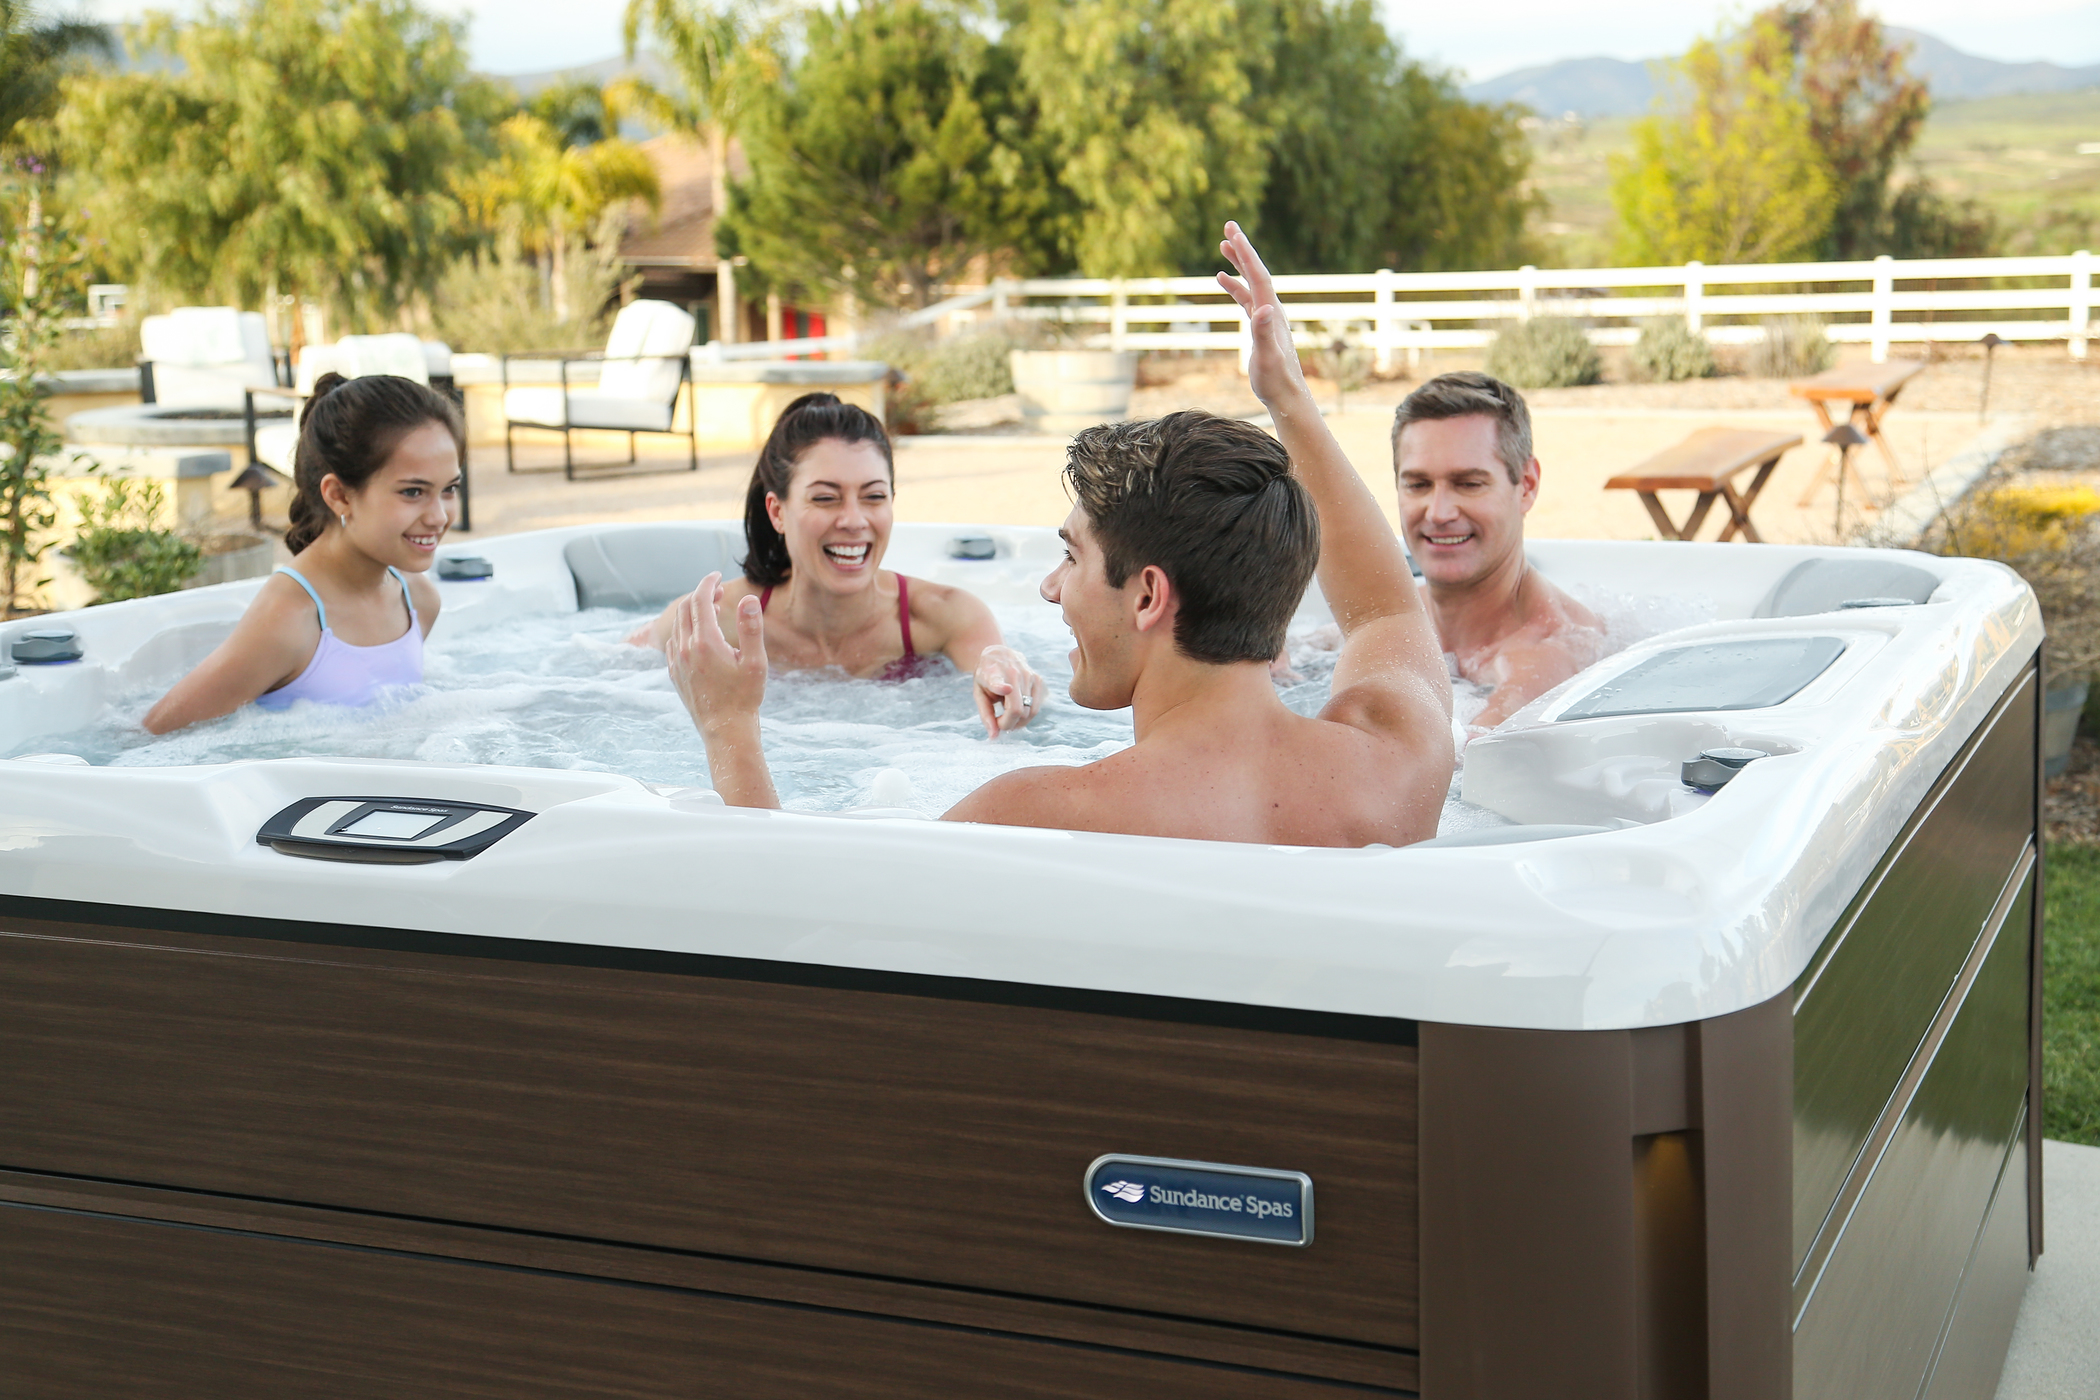 Family enjoying quality time in an outdoor hot tub.